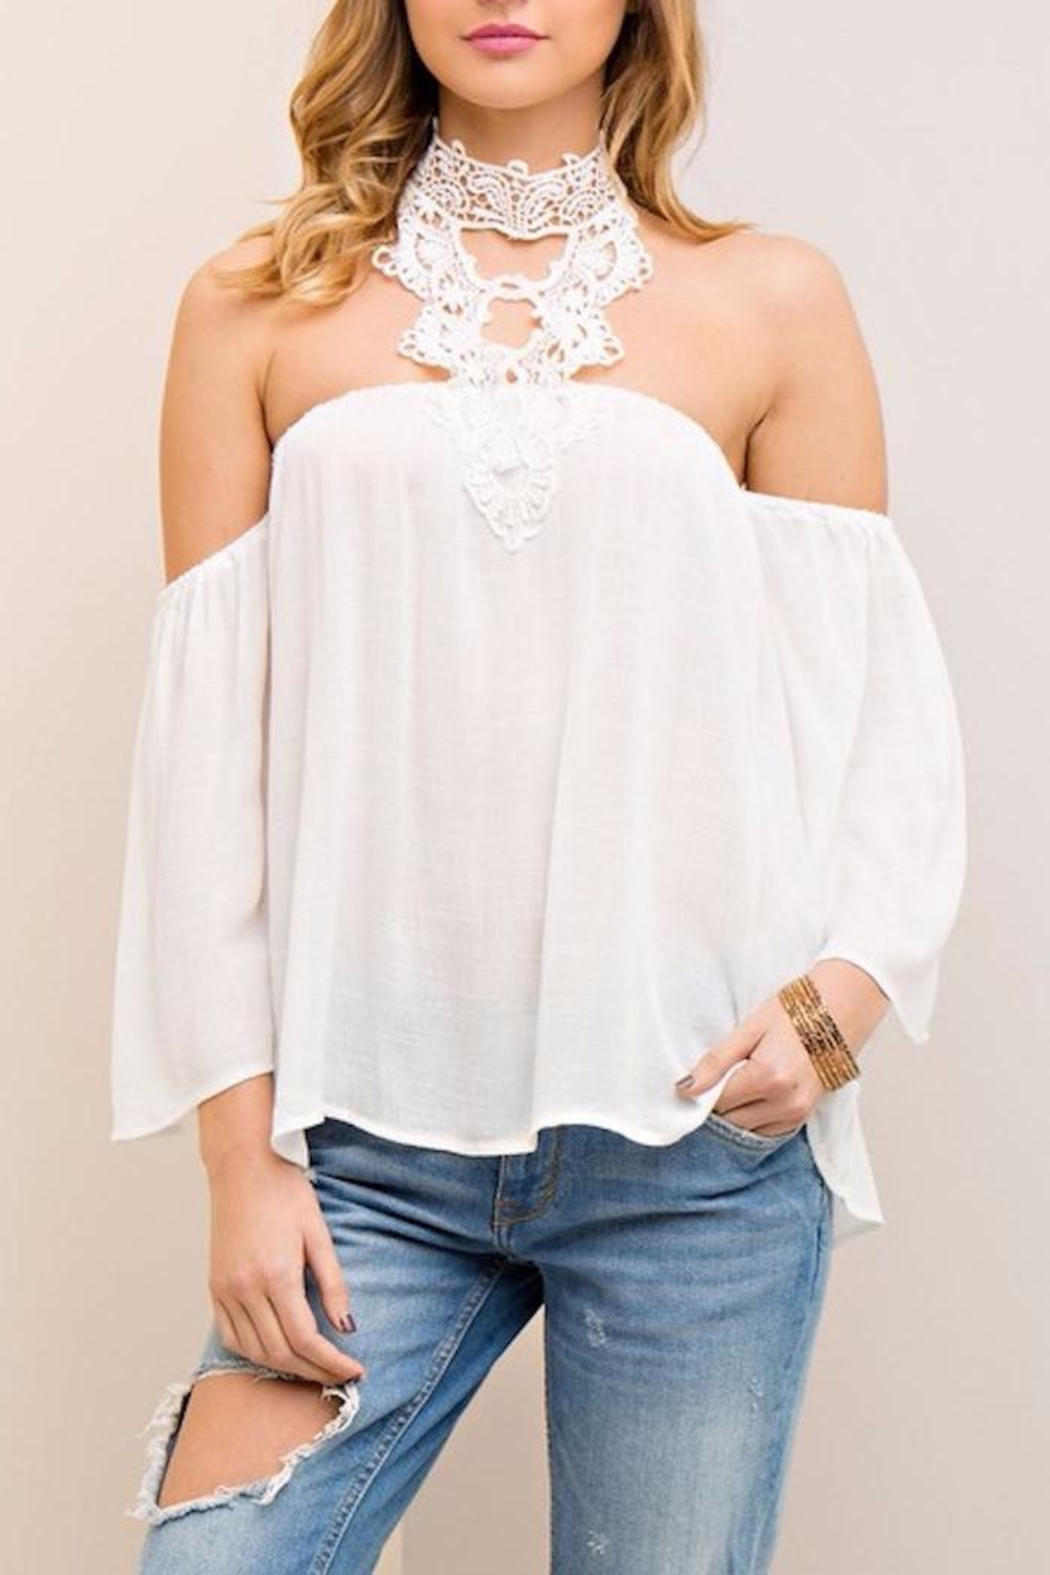 People Outfitter Dream Crochet Top - Main Image